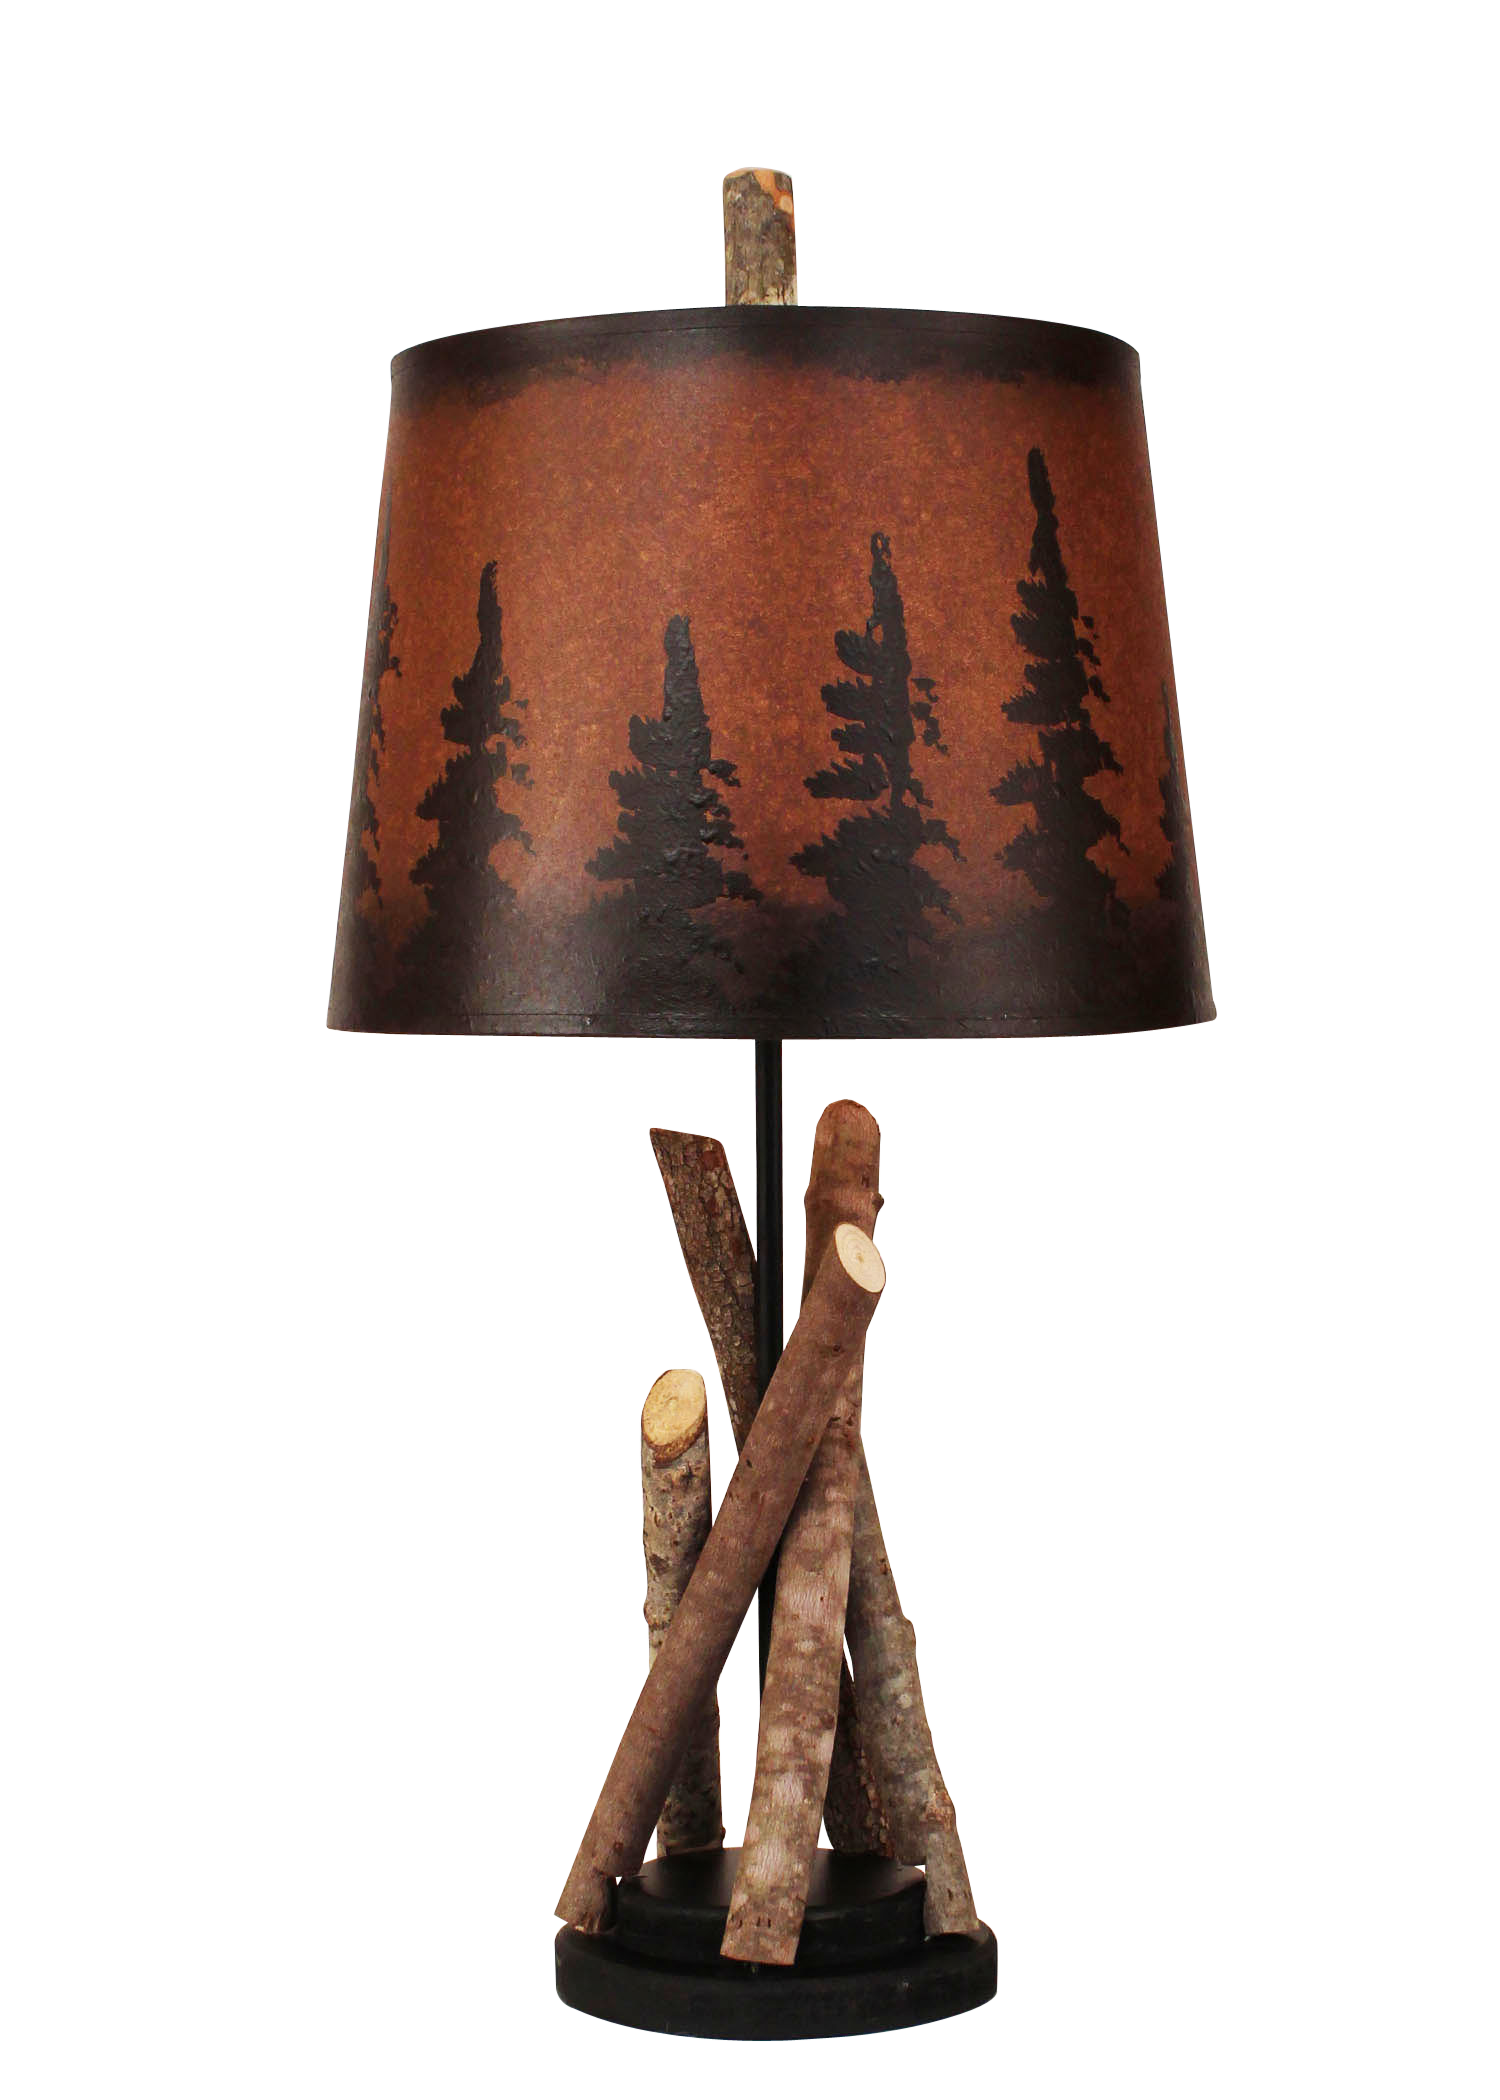 Black Stick Accent Lamp with Round Wooden Base- Pine Tree Grove Shade - Coast Lamp Shop